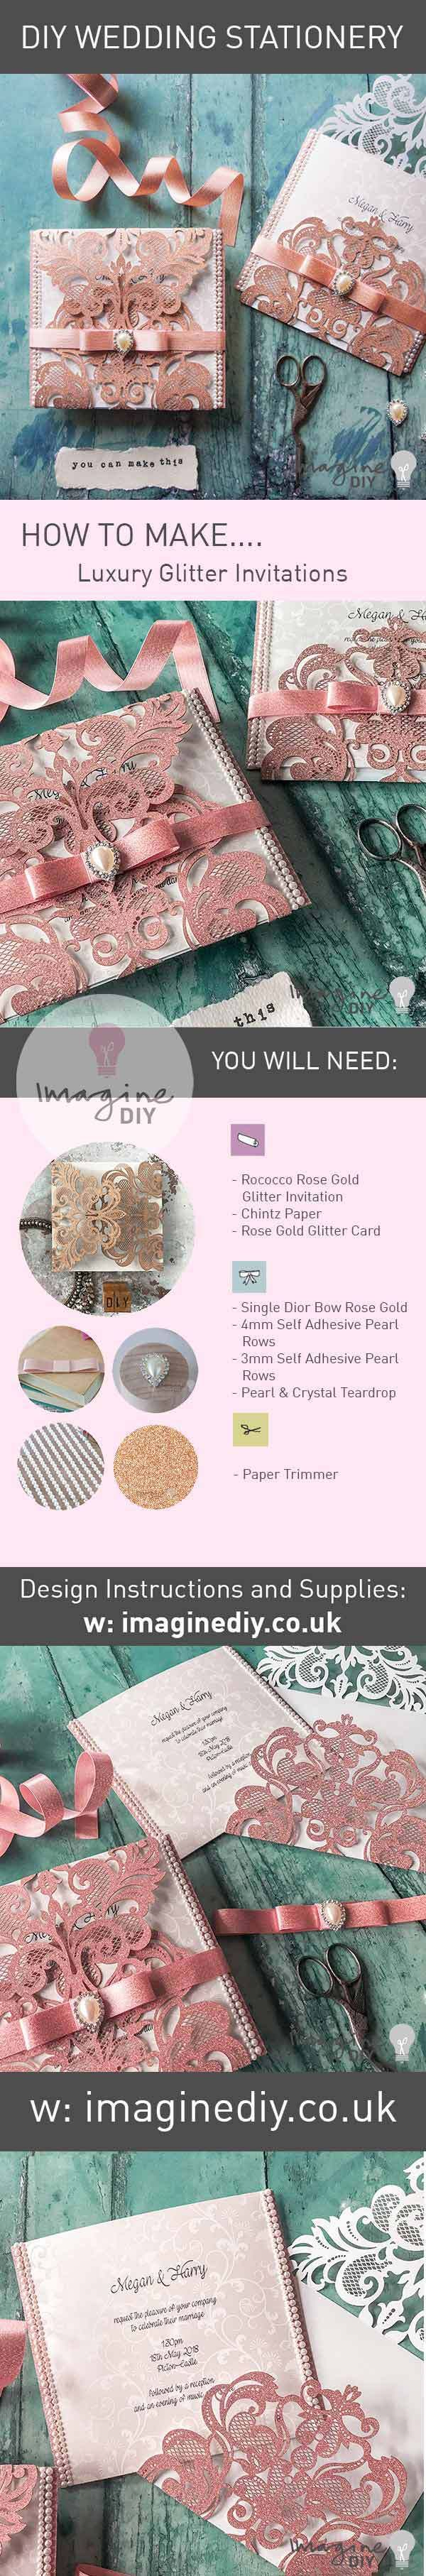 How to make your own luxury glitter wedding invitations with pearls. DIY wedding stationery supplies and instructions from www.imaginediy.co.uk  #copperweddingidea #copperwedding #rosegoldwedding #rosegoldinvitations #diywedding  #diyweddingstationery  #diyweddingideas  #rosegold #makeyourownwedding #imaginediy  #royalwedding #glitterinvites #glitterinvitations #sparklewedding #weddingidea #blushpink #blushpinkwedding #blushpinkweddingidea